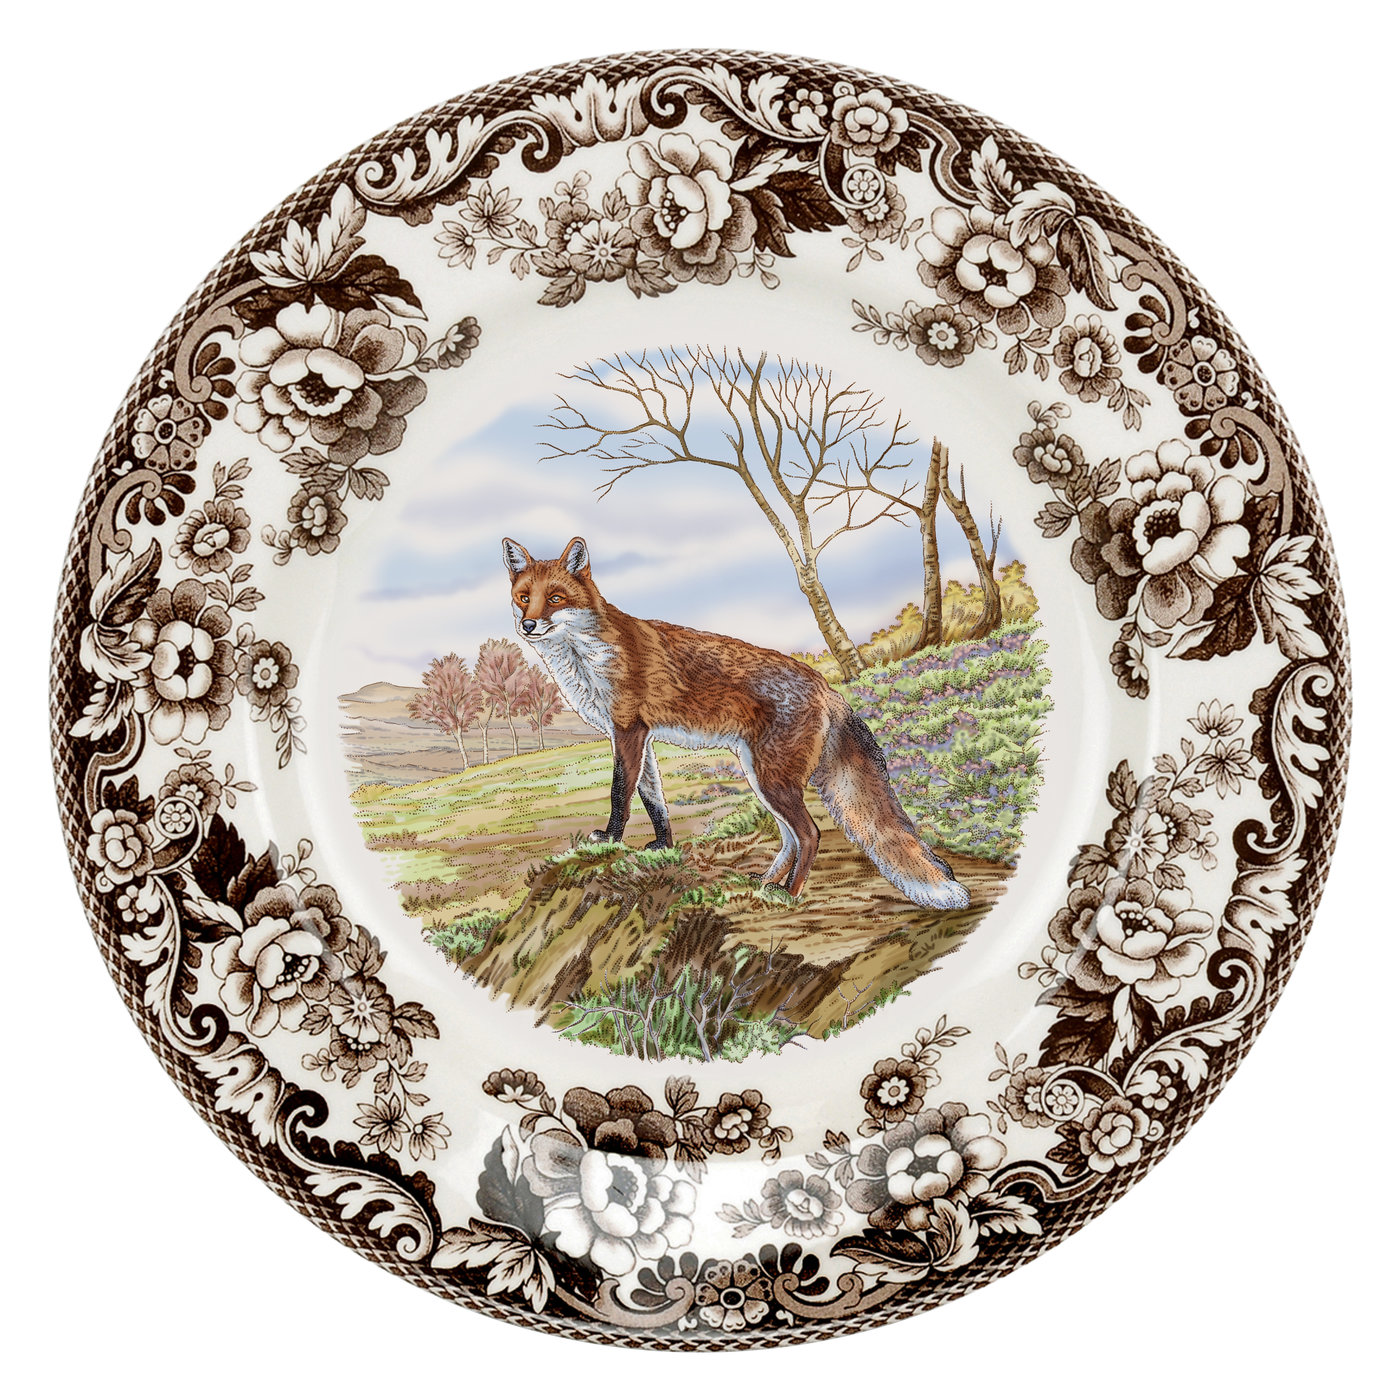 Spode Woodland Dinner Plate 10.5 Inch (Red Fox) image number 0